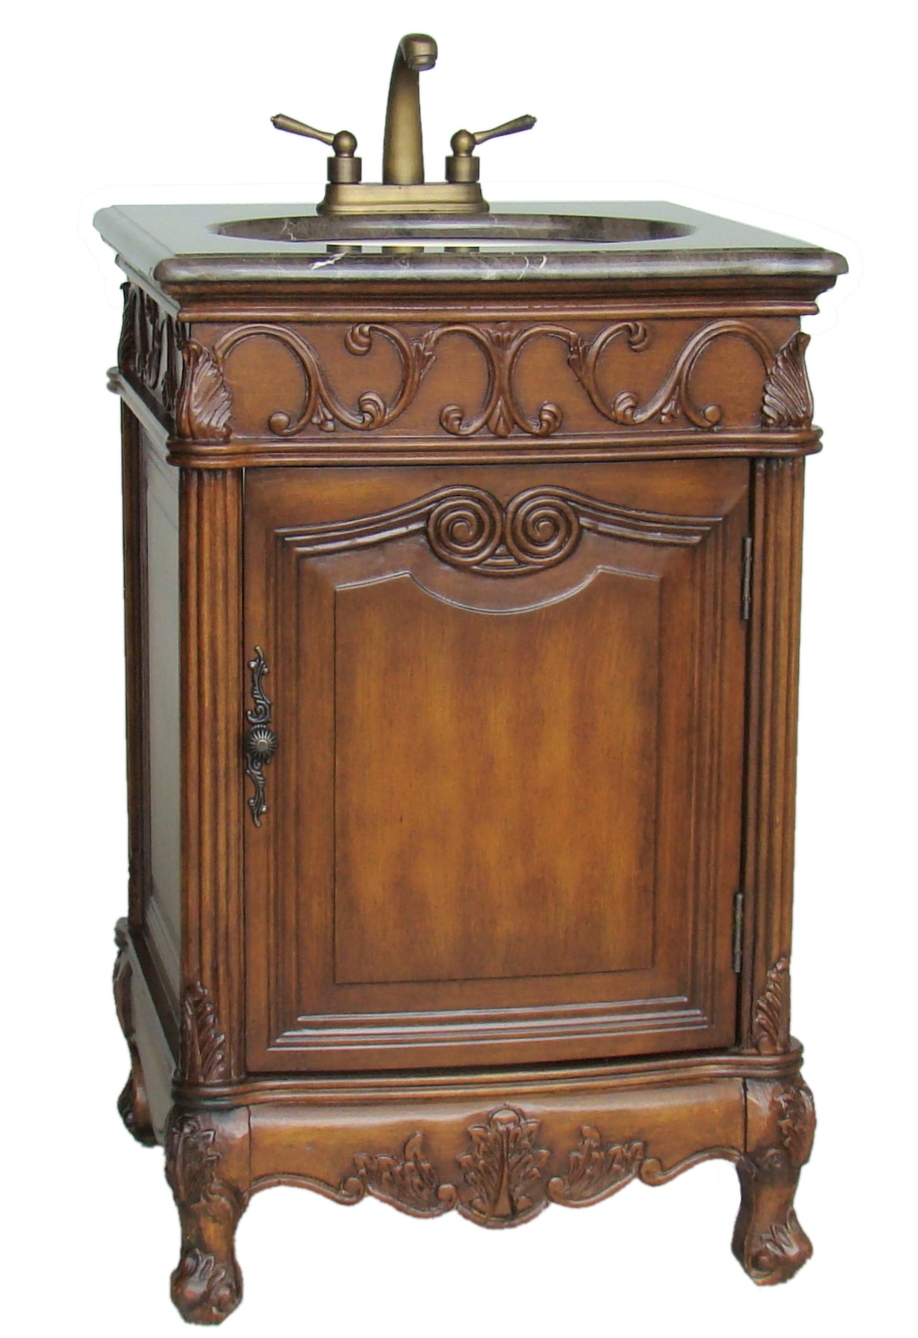 12 Inch To 29 Inch Wide Vanities Single Sink Cabinet Limited Space Vanity